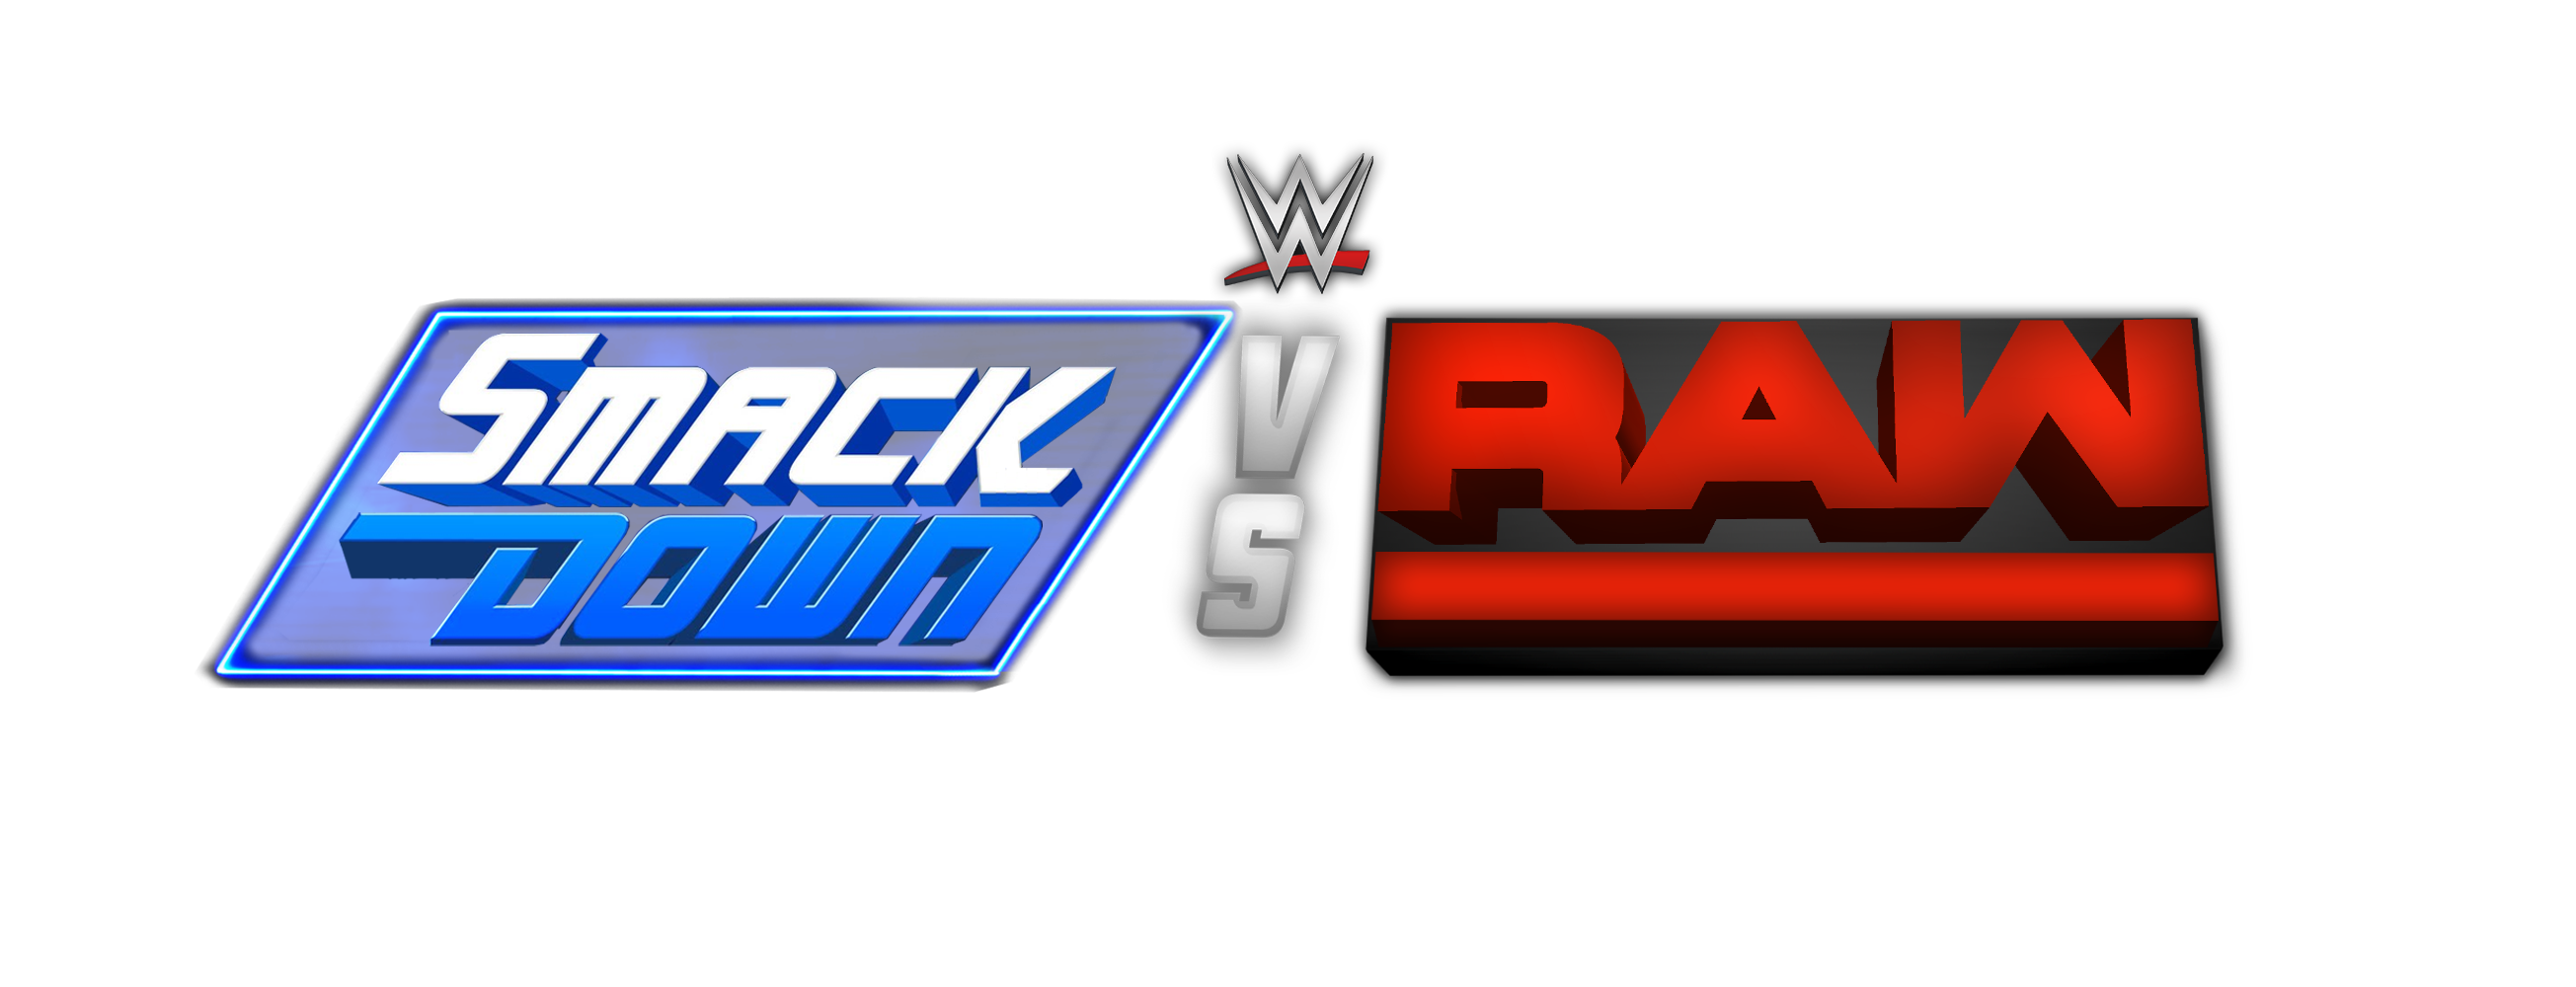 wwe smackdown vs raw custom logo by lastbreathgfx on